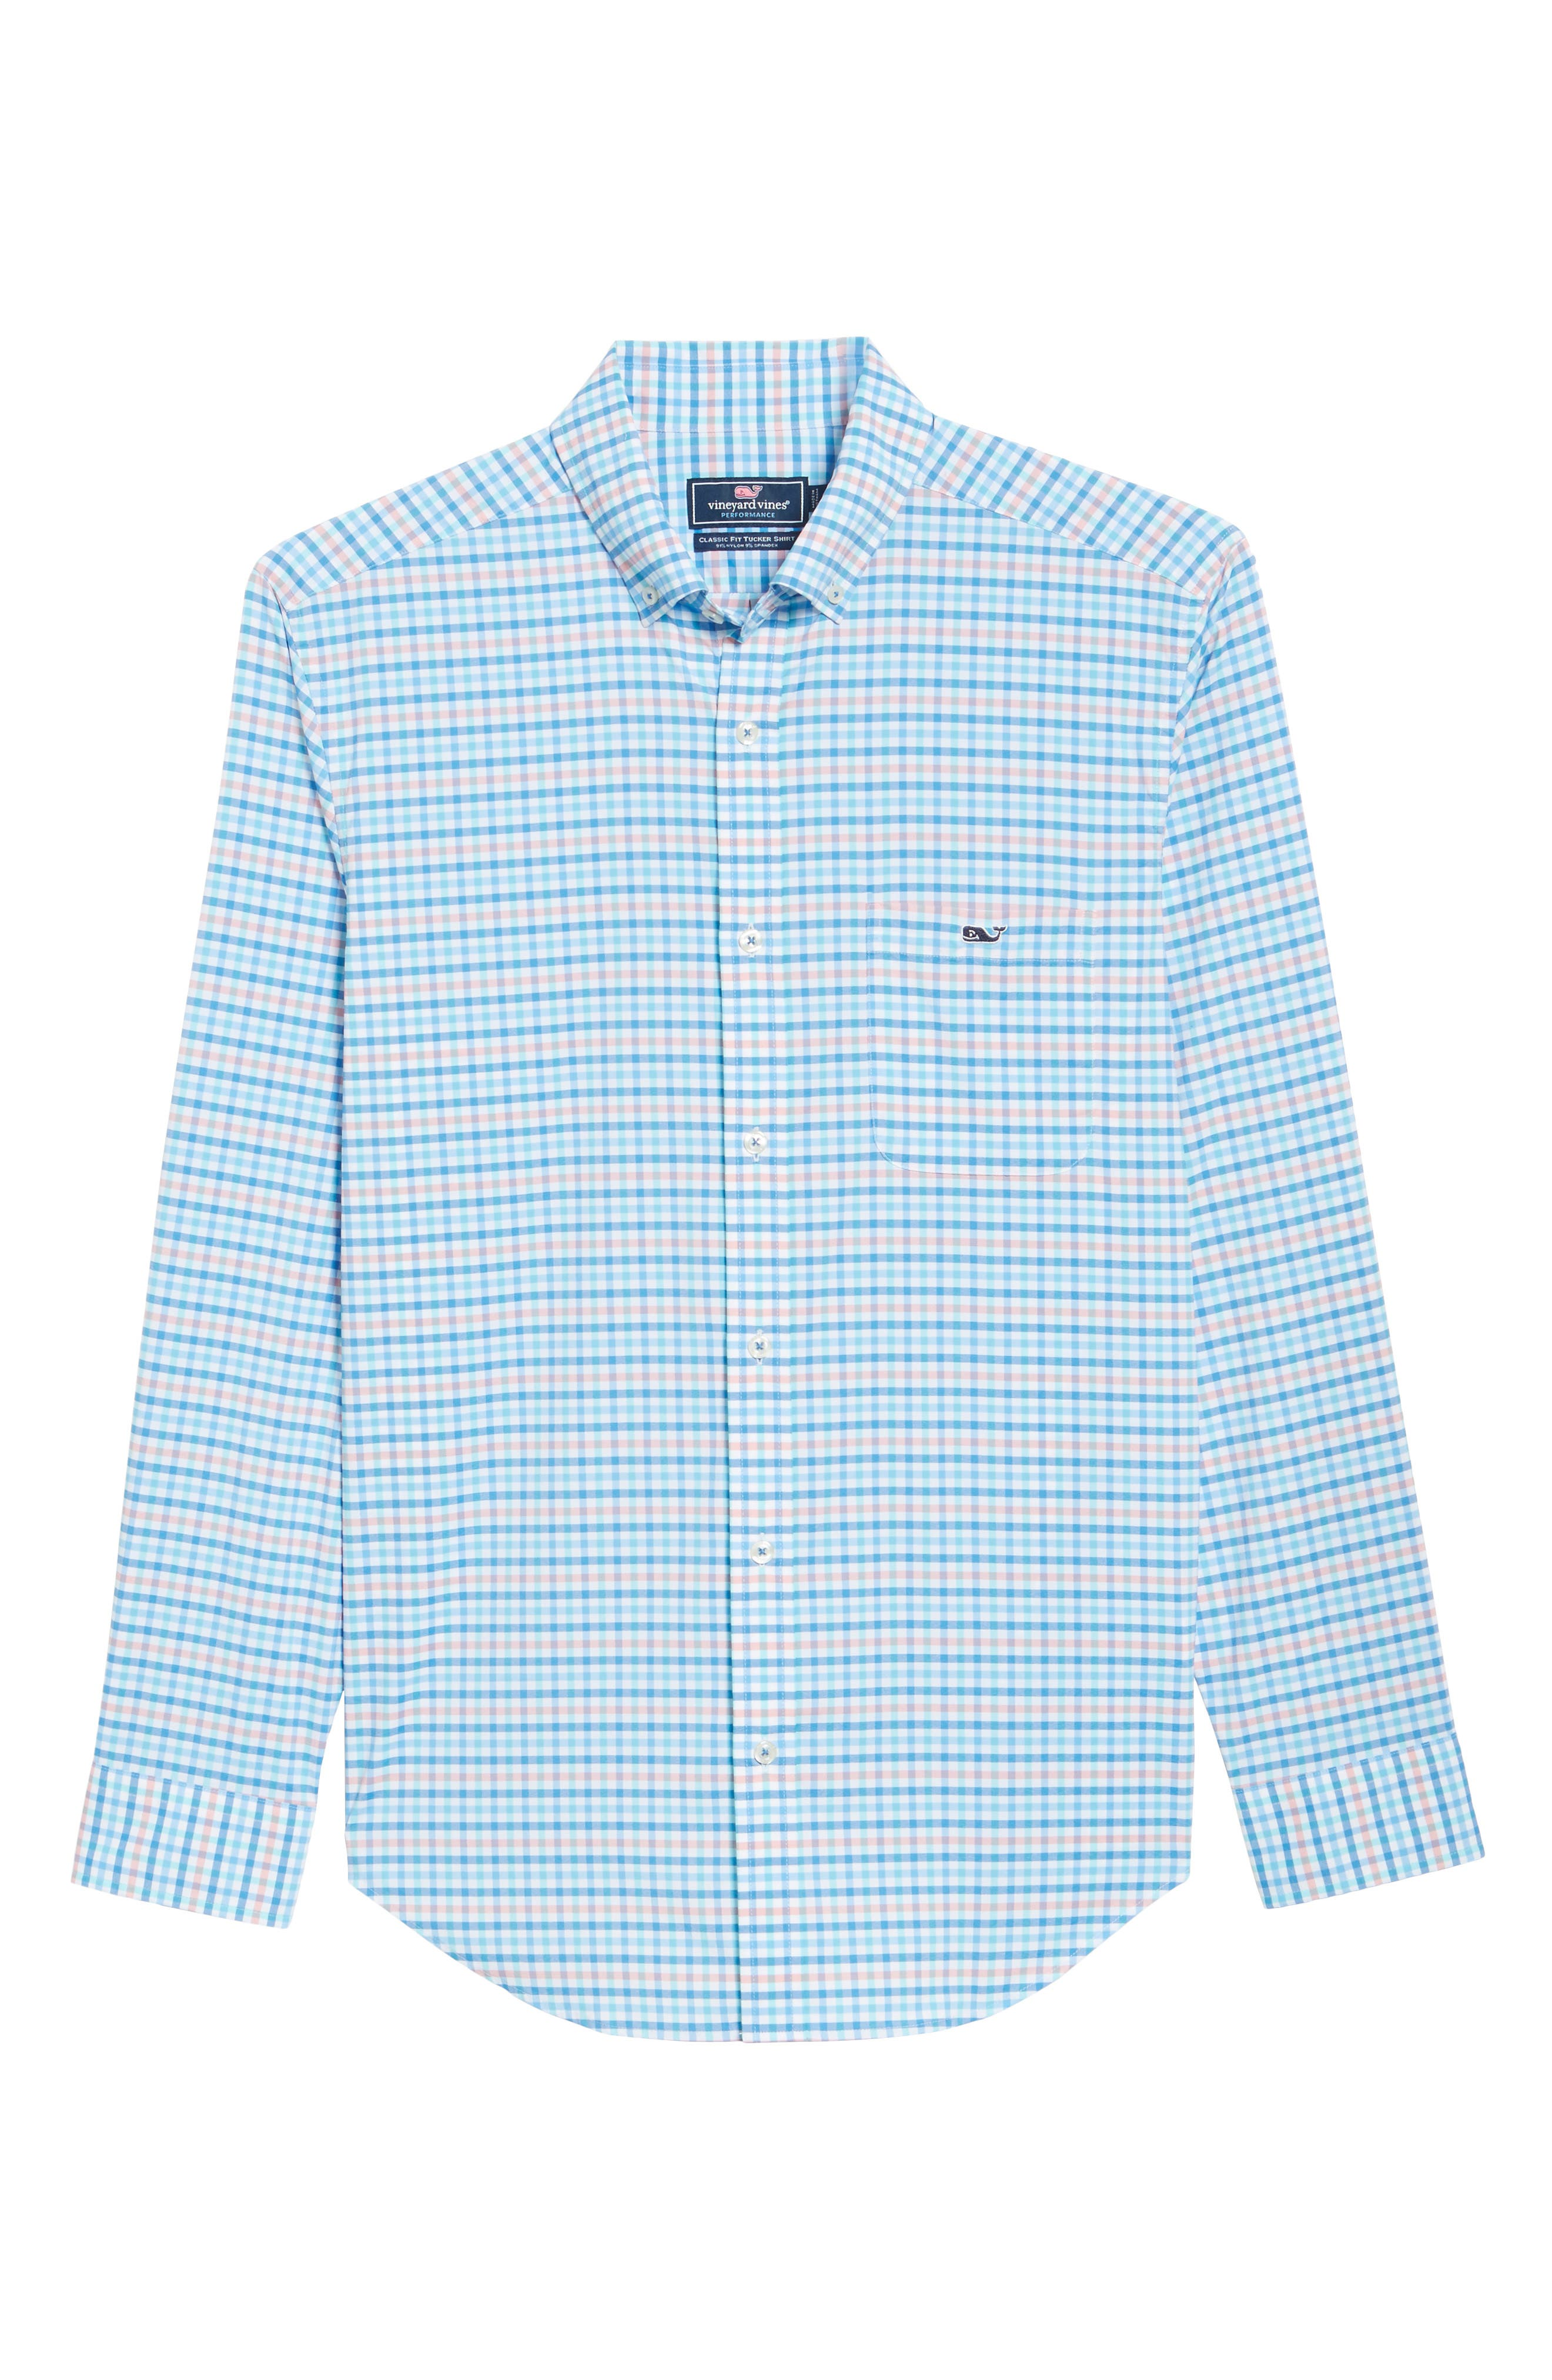 Coco Bay Classic Fit Check Performance Sport Shirt,                             Alternate thumbnail 6, color,                             484